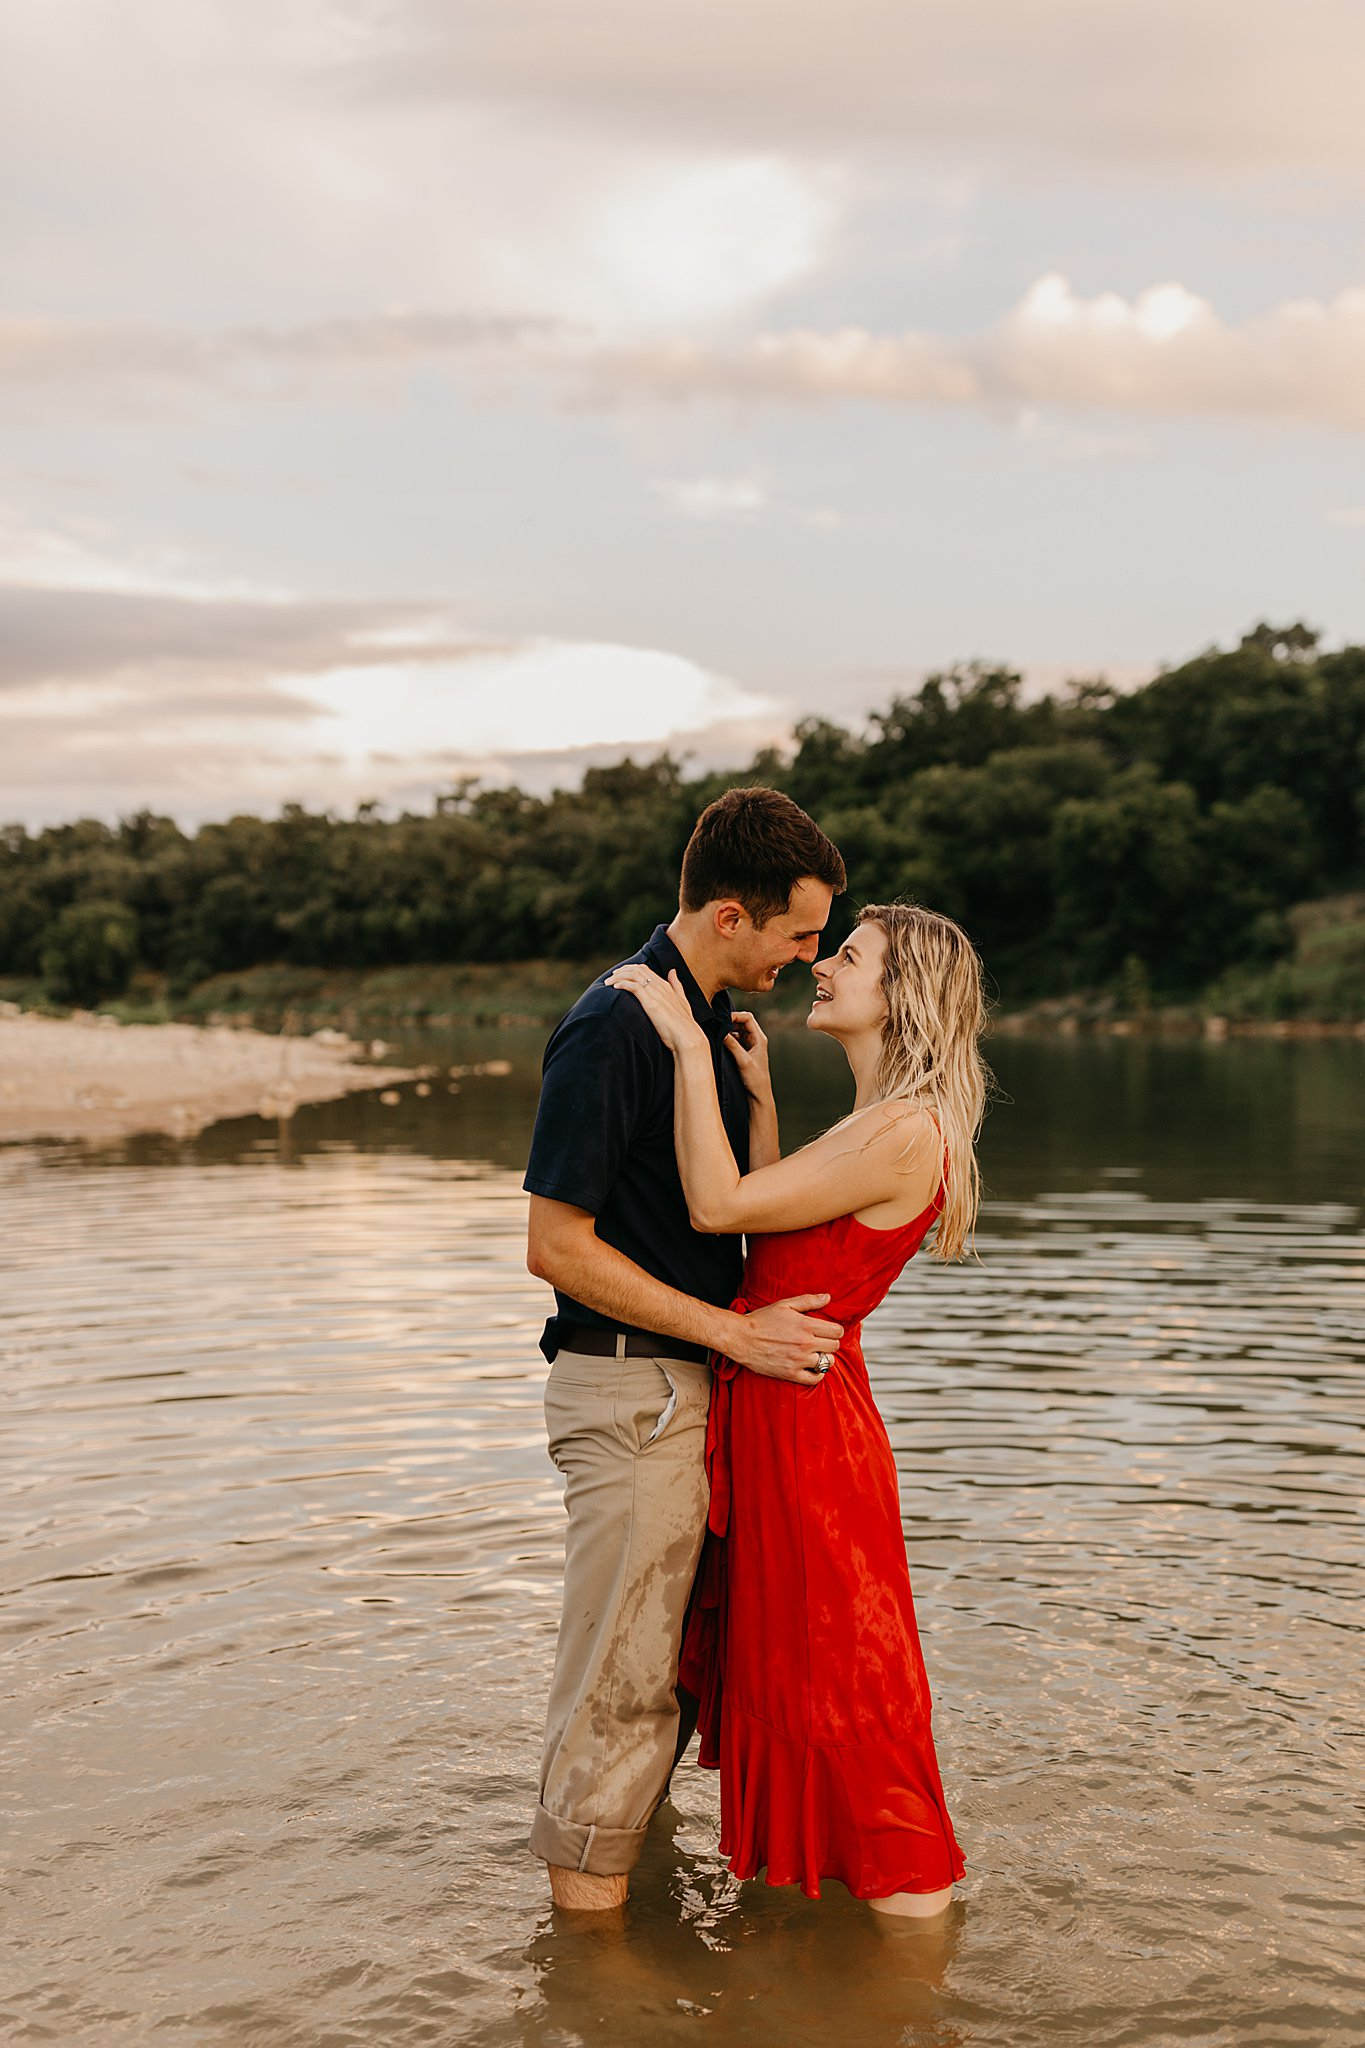 Wilderlove Co_Wedding Photographer_Dripping Springs Photography_Adventure Engagemenet_Rock Climbing Engagement_Hill Country Photographer_North Texas Photographer_0032.jpg